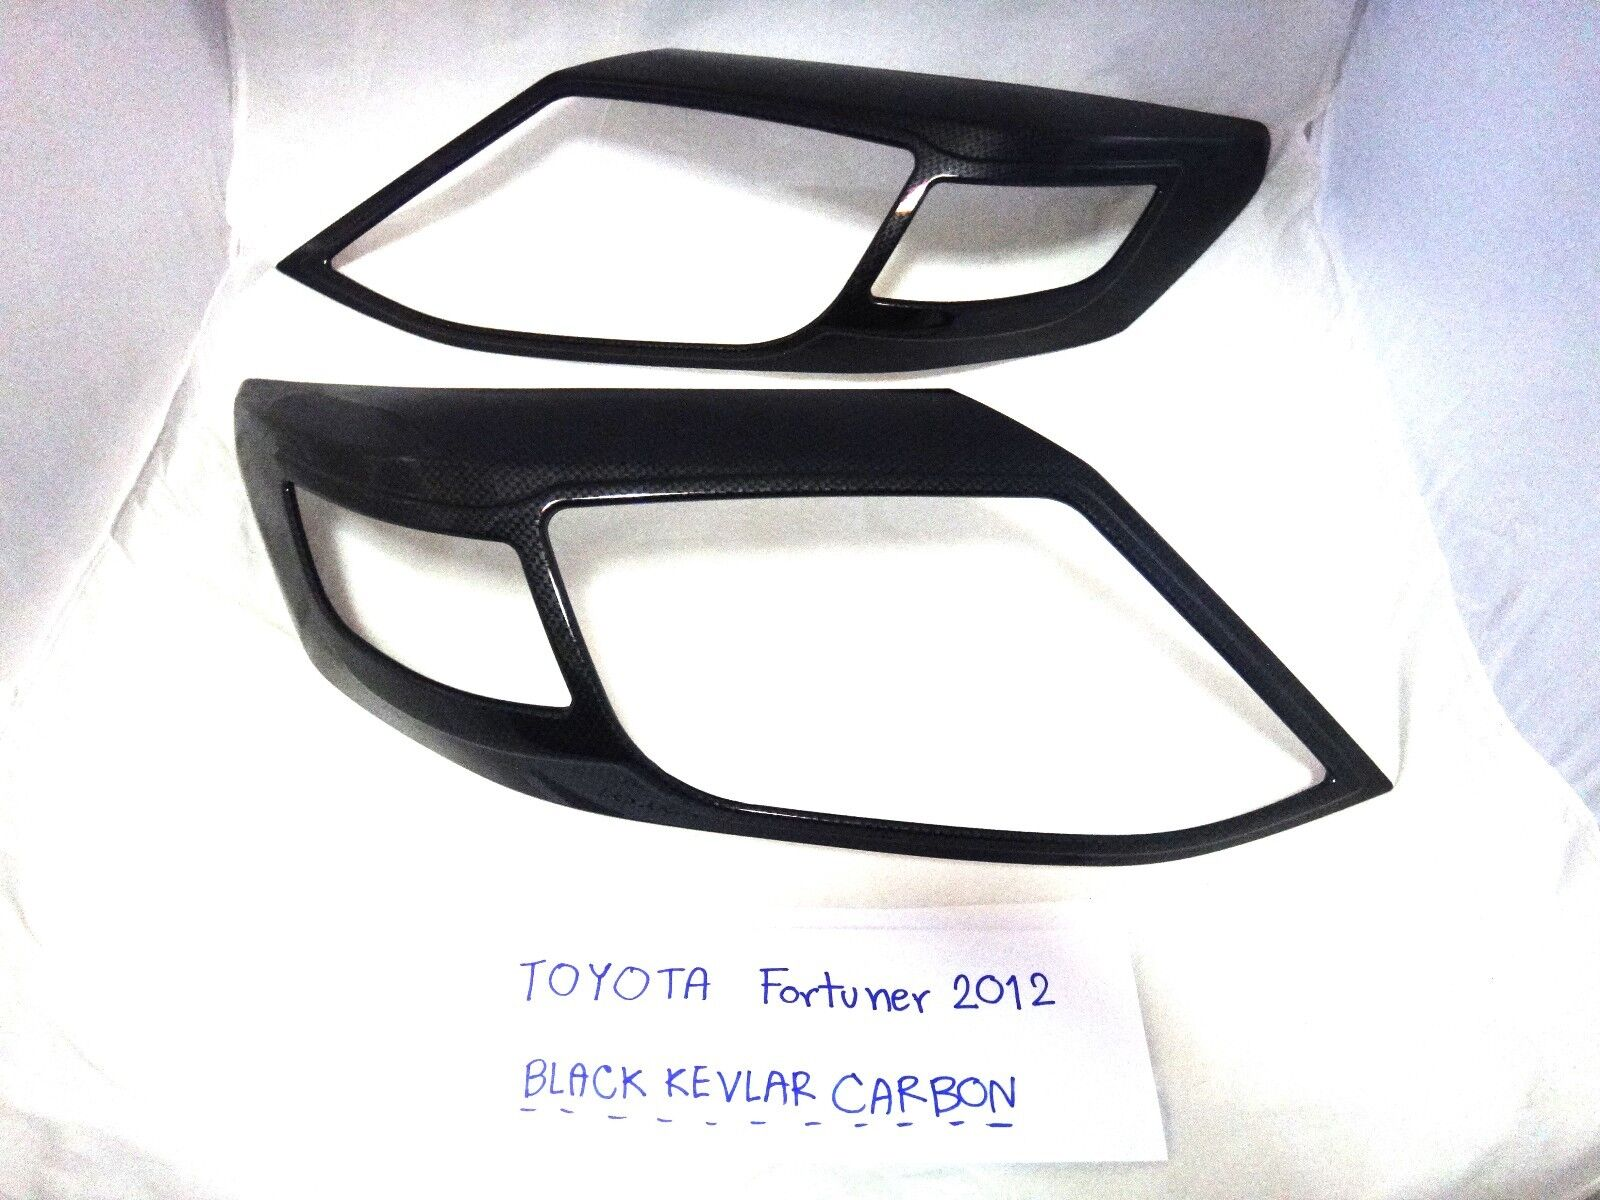 BLACK KEVLAR REAR TAILLIGHT LAMP COVER TRIM FOR TOYOTA FORTUNER SUV 2012-2014